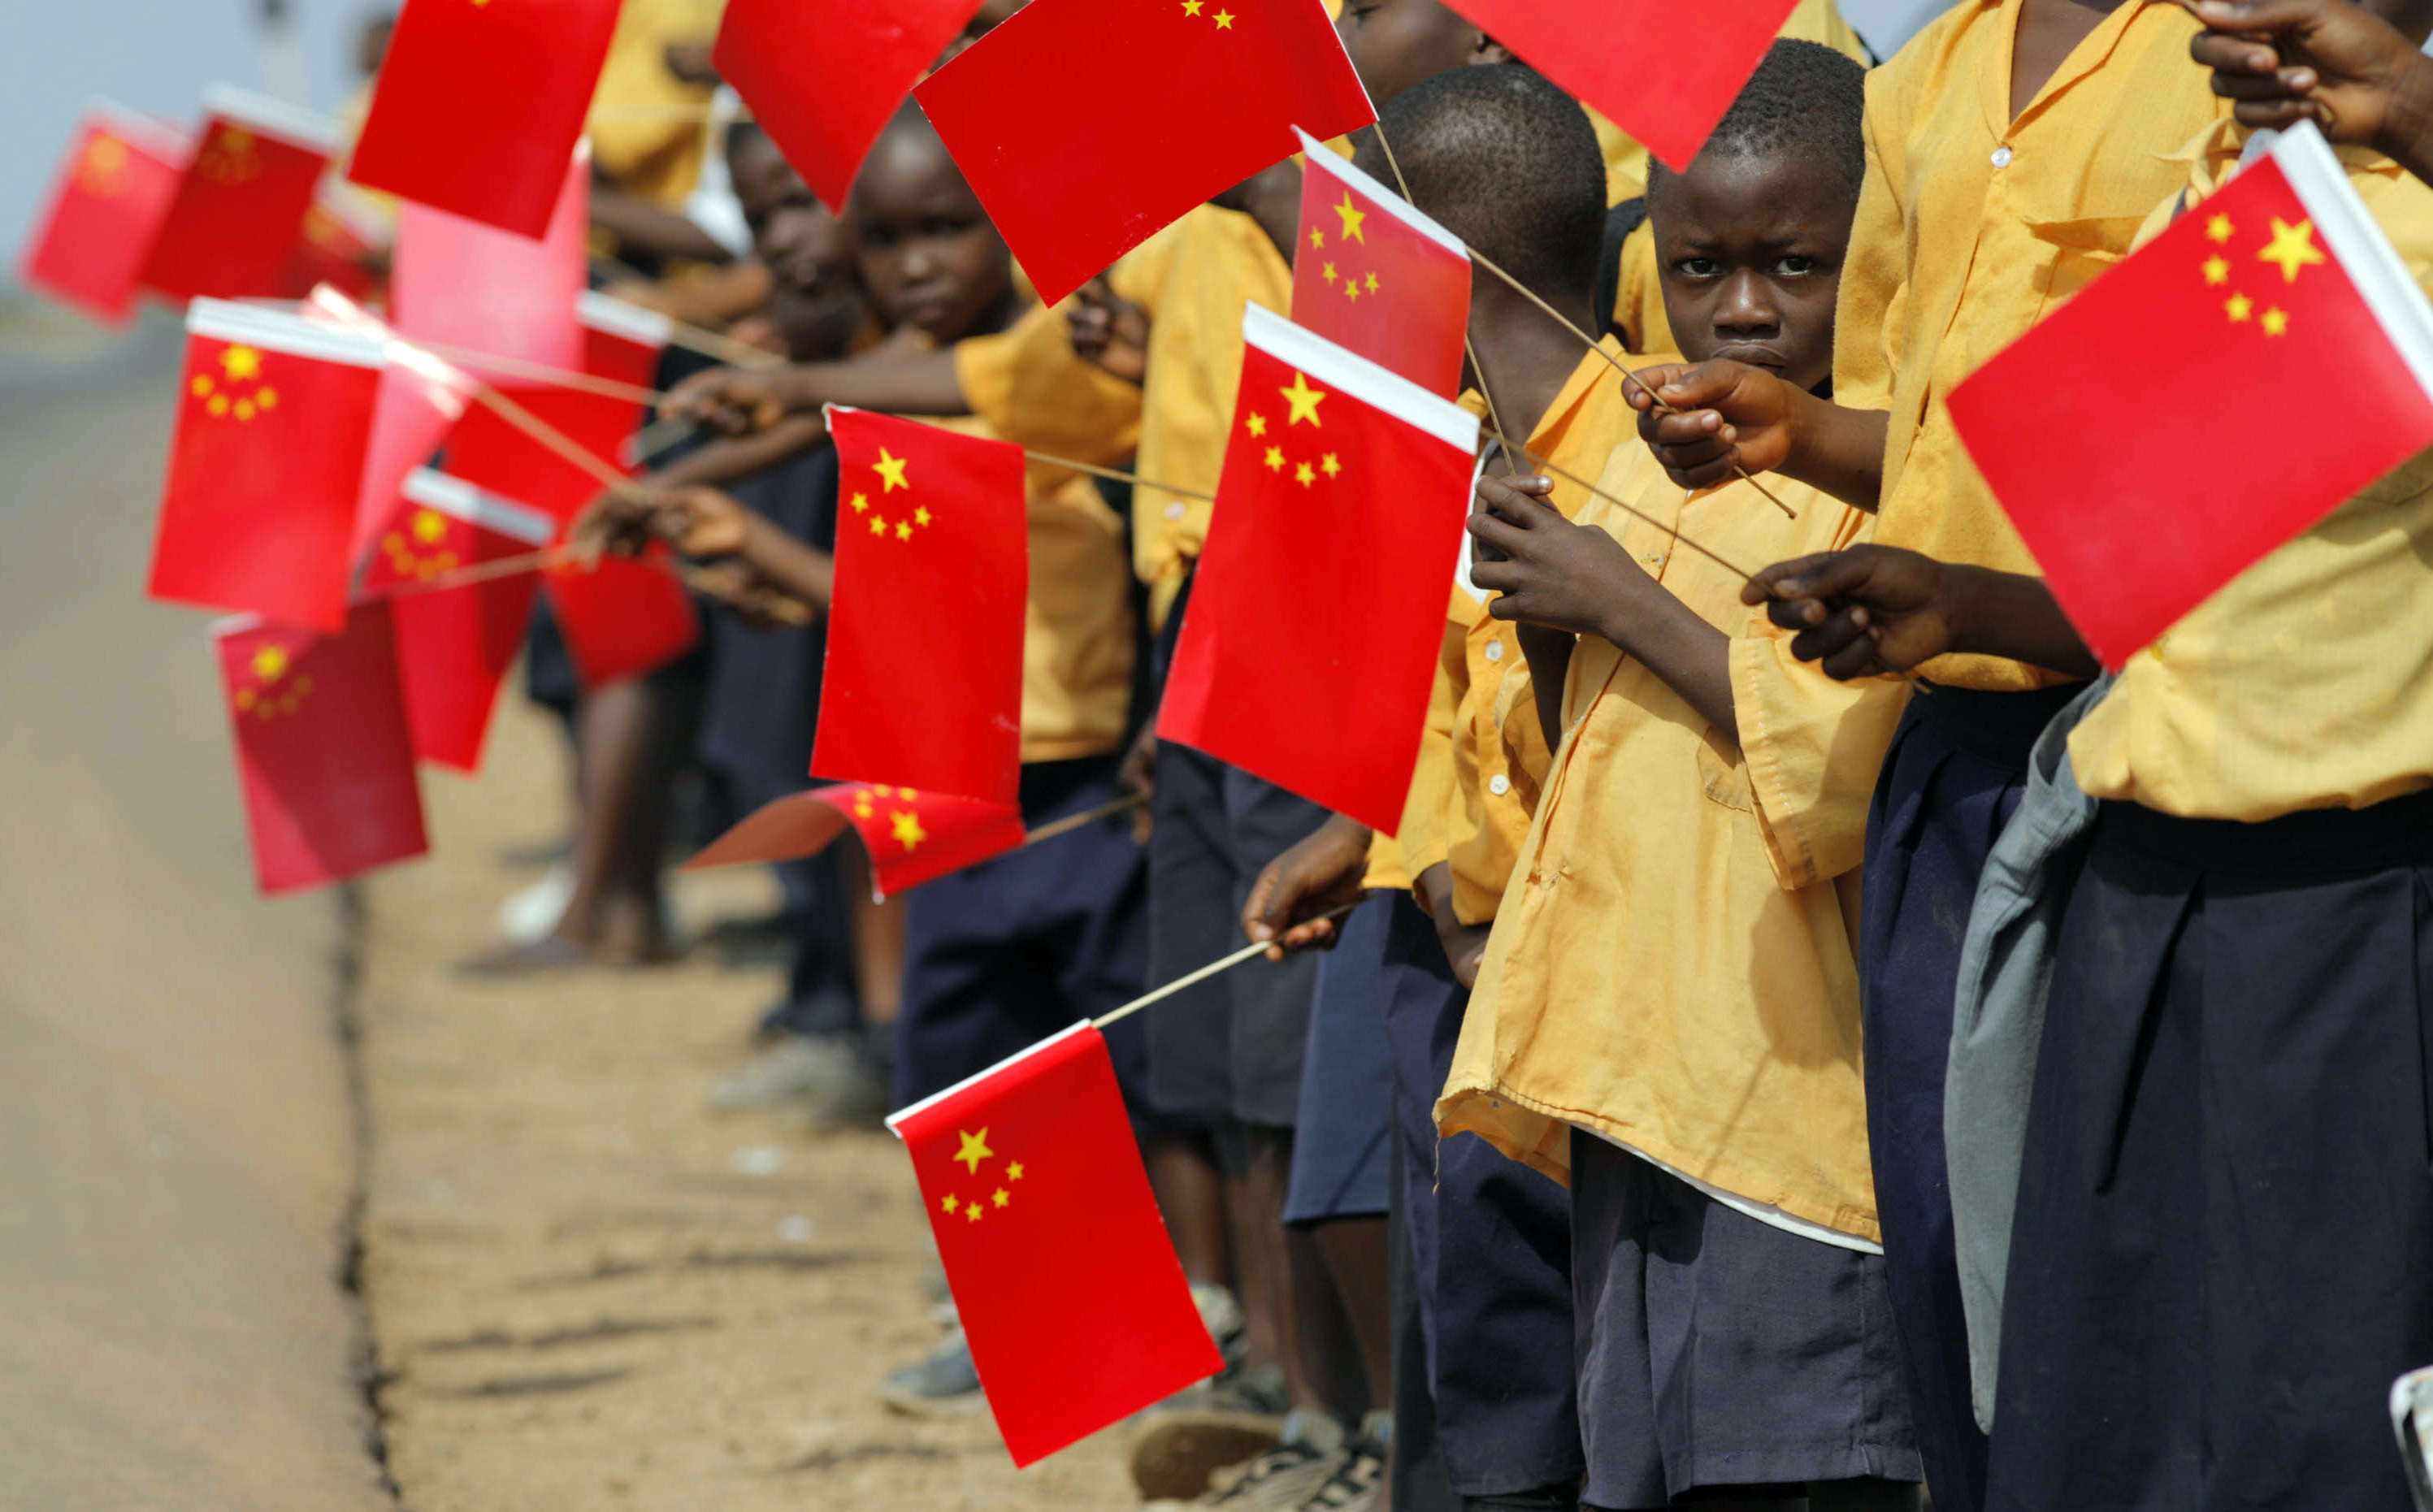 Liberian children hold Chinese flags before the arrival of China's President Hu in Monrovia